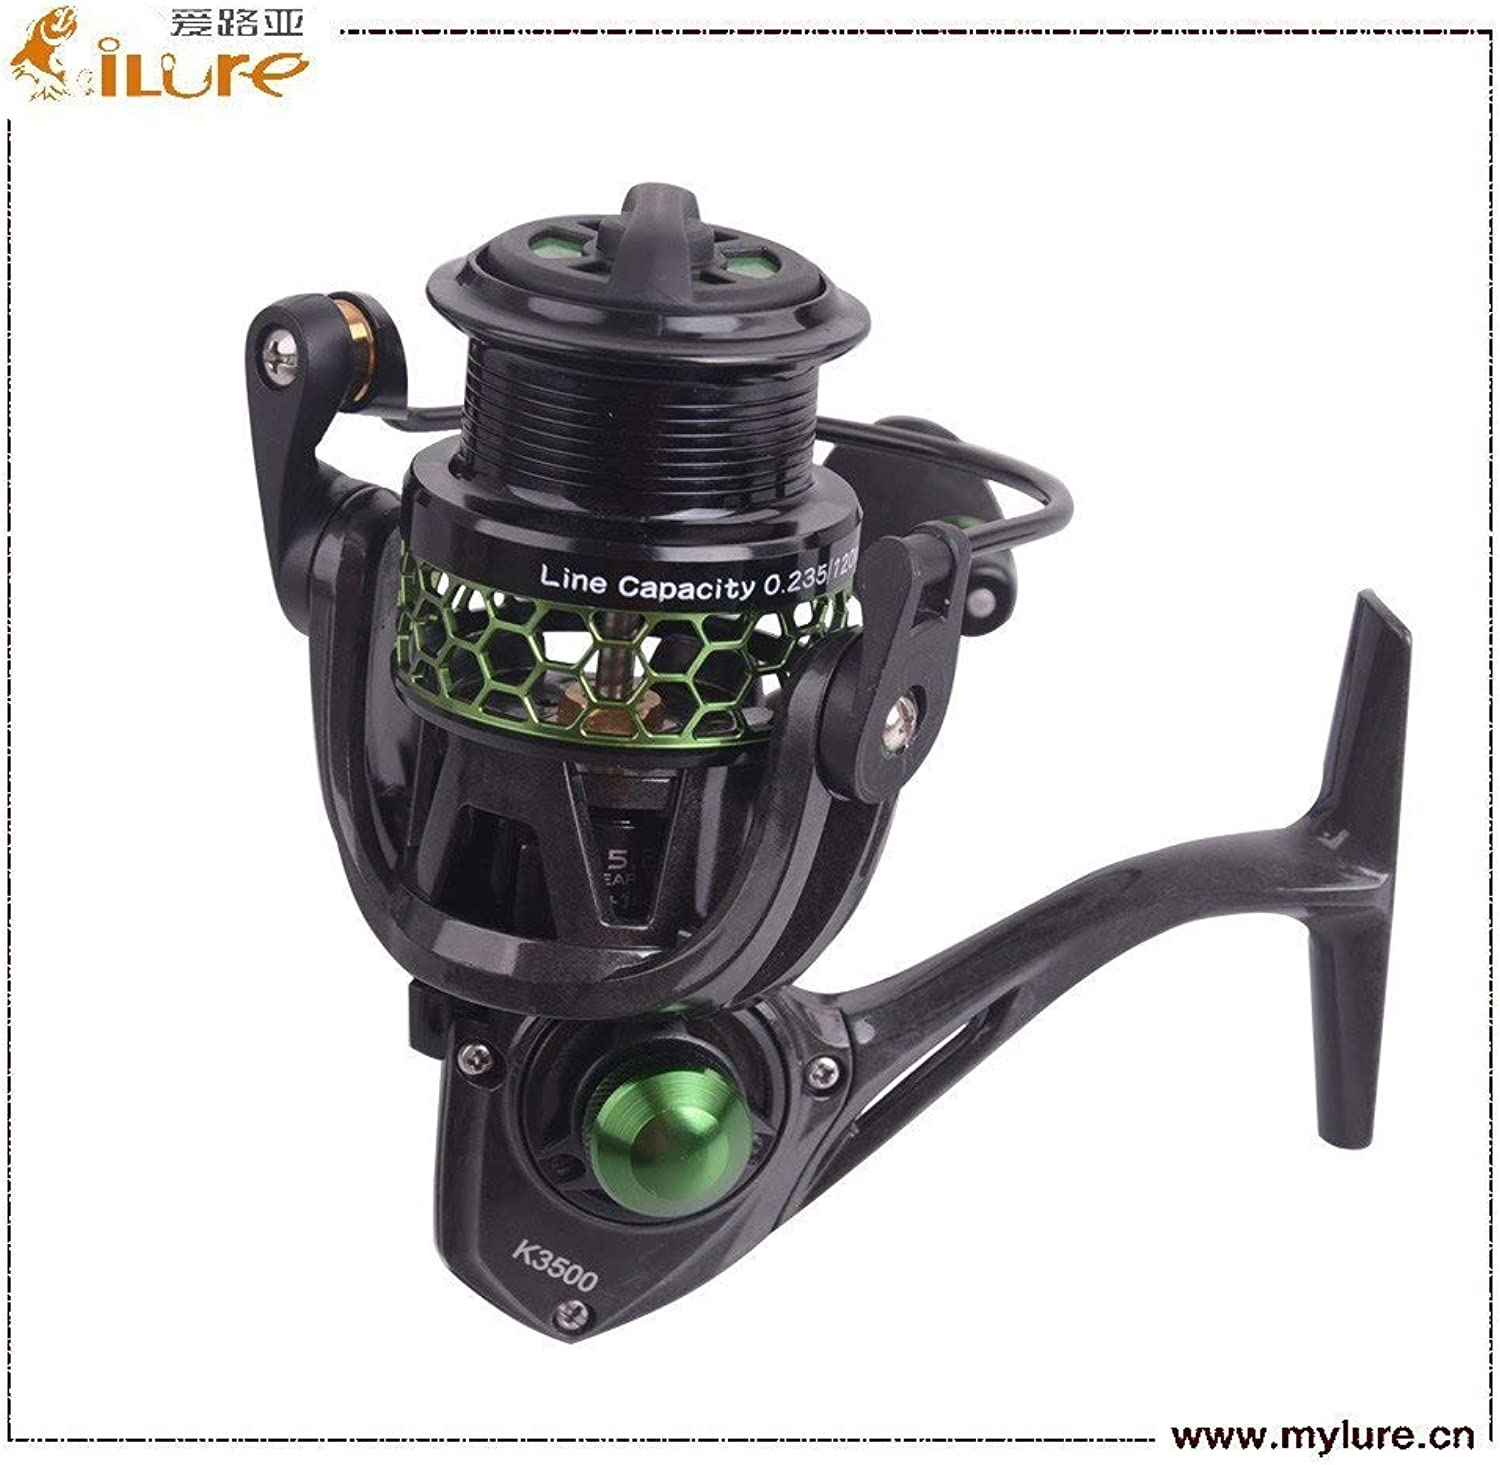 GEOPONICS iLure 2017new Mela Super Light Weight Graphit Body 10 Bearing Balls Spinning Reel Fishing Reel 5.2 1 carp Fishing Rod Reel Pesca color Purple Bearing Quantity 10 Spool Capacity 2500 Series